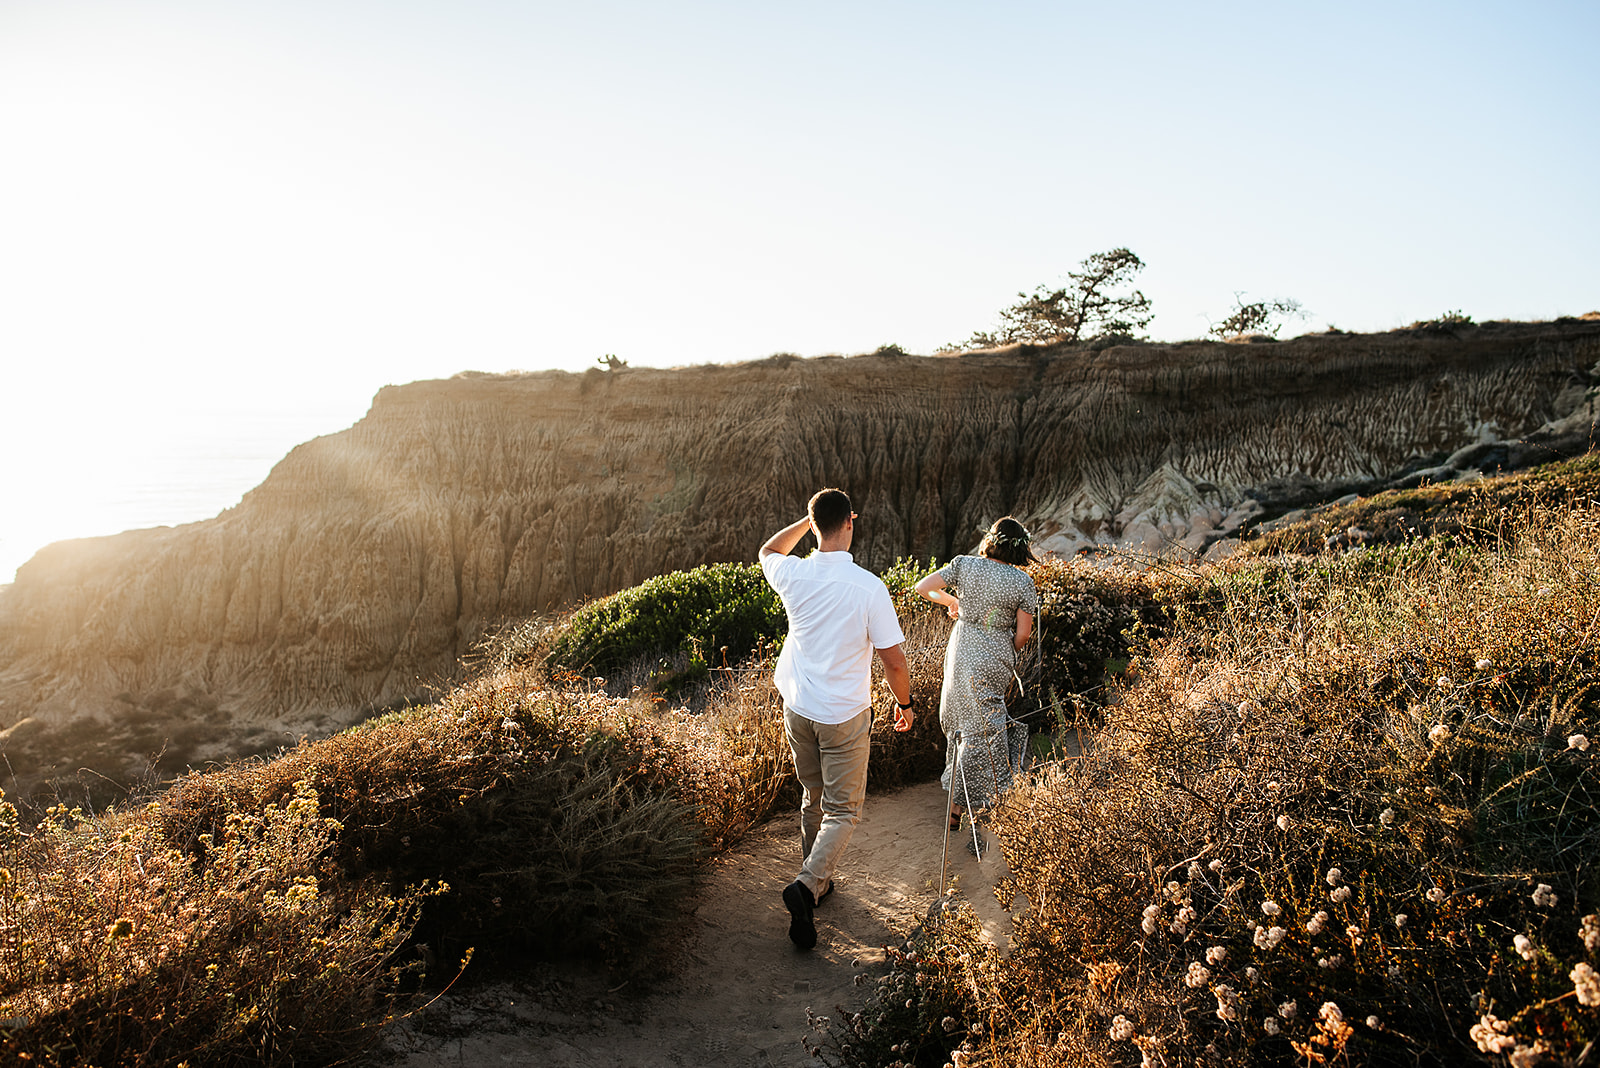 SoCal_Standard_-_San_Diego_Engagement_Photographer_-_Modern_Candid_Destination_Photographer_-_Engagement_Session_at_Torrey_Pines_San_Diego_California_-_Grace_and_Robert-156.jpg